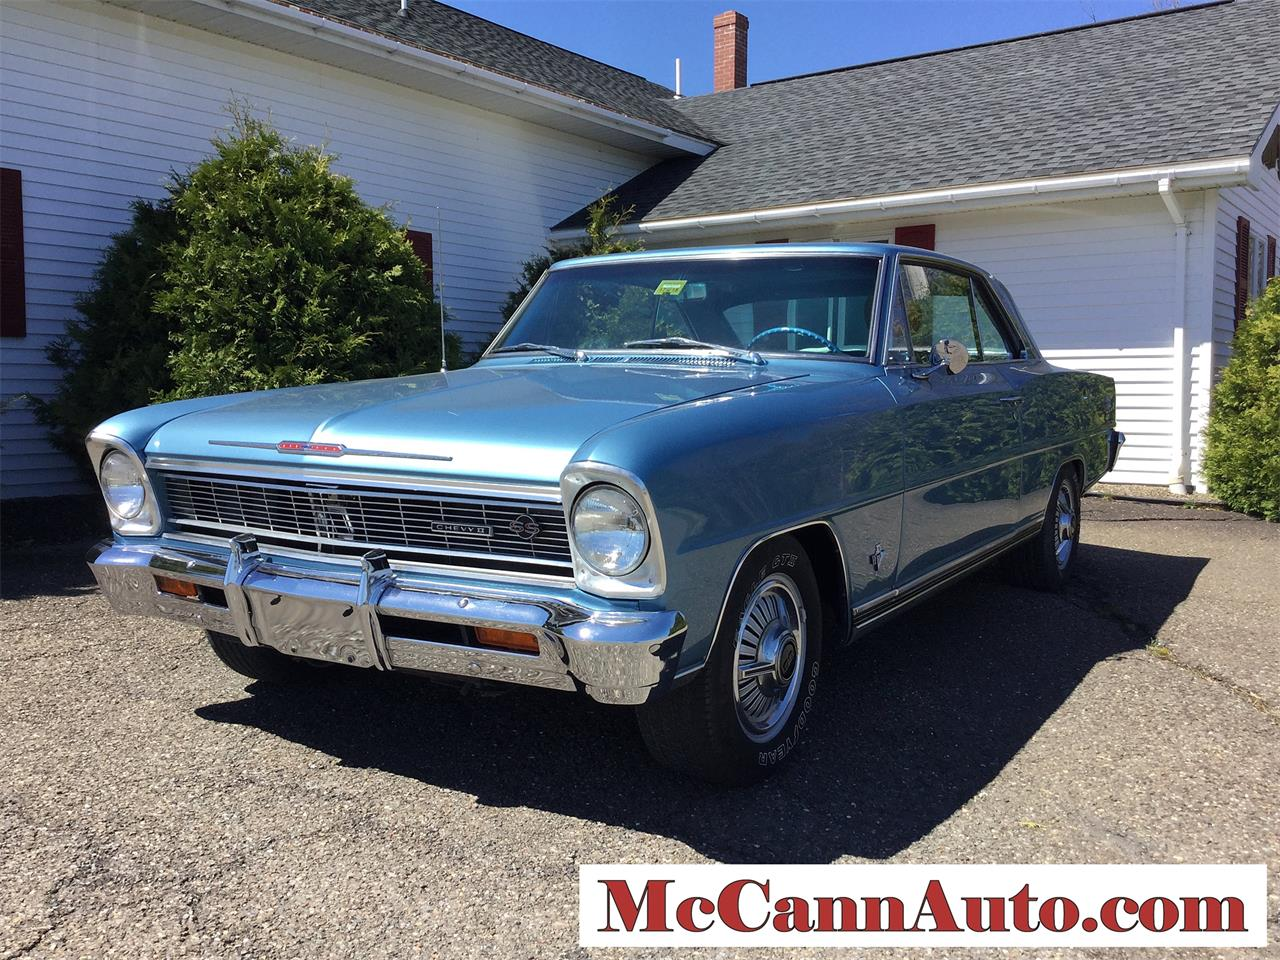 Large Picture of '66 Chevrolet Nova II SS - $76,900.00 - JQ4K